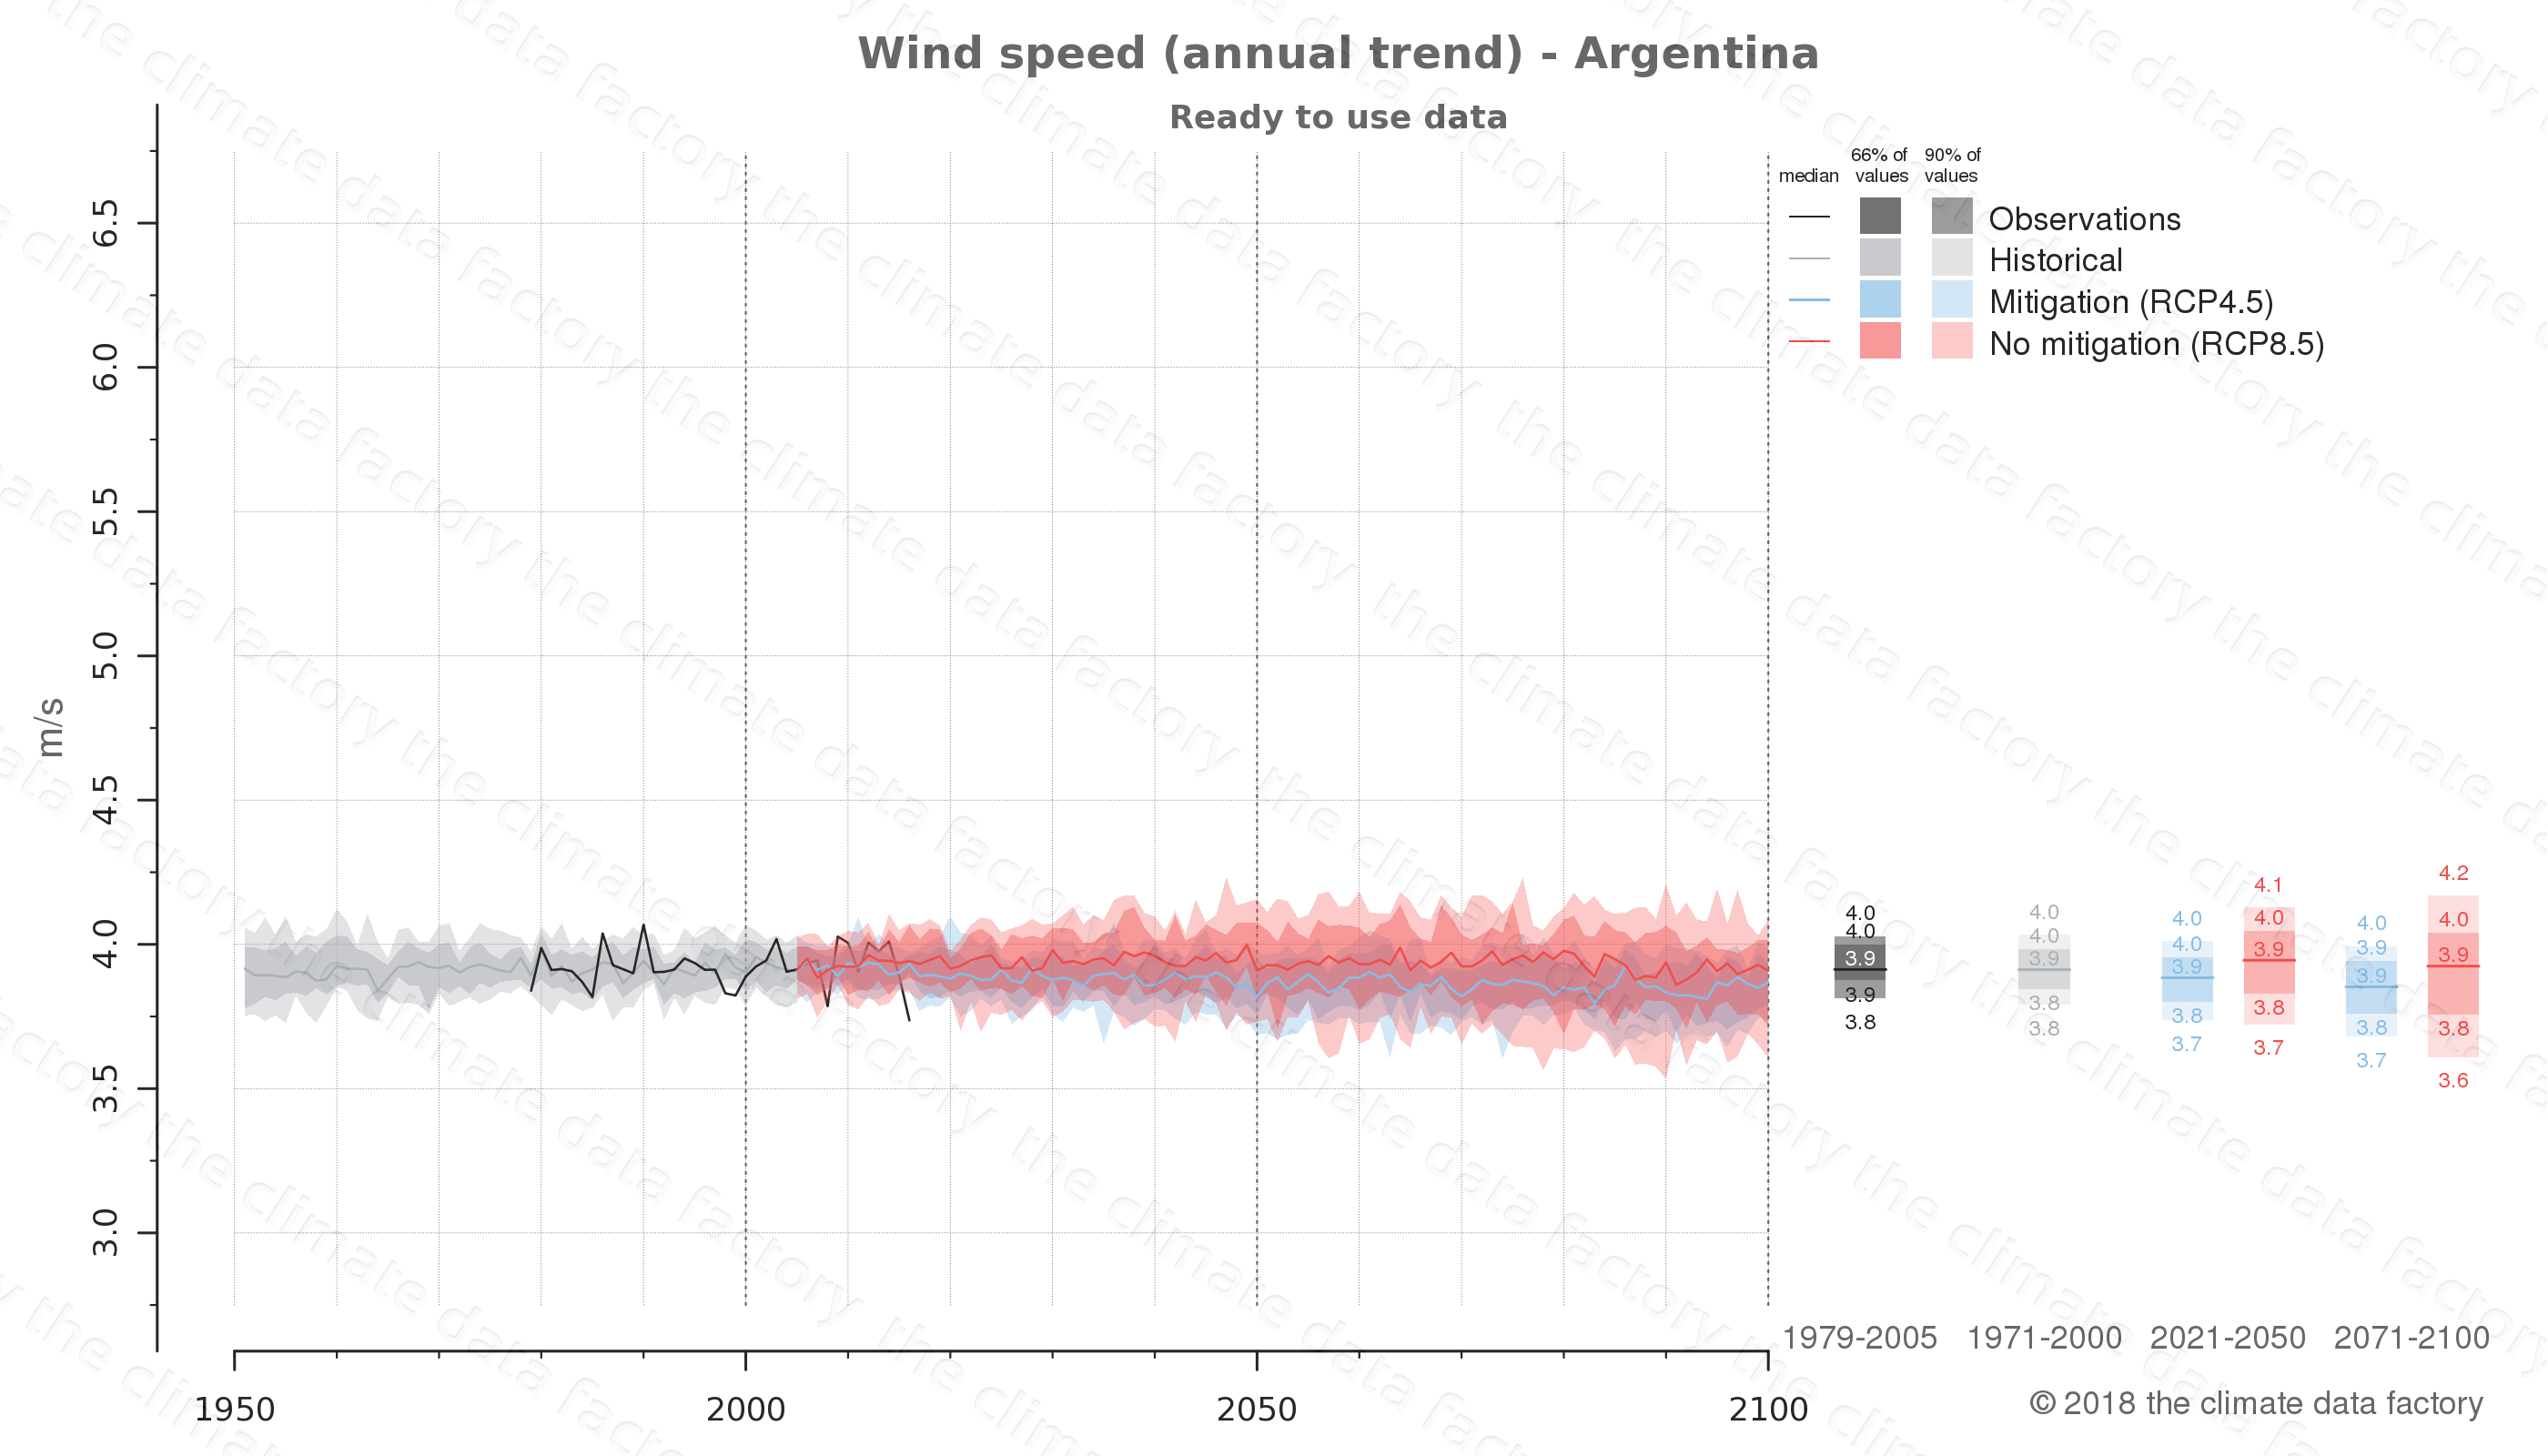 climate change data policy adaptation climate graph country data wind speed argentina south-america